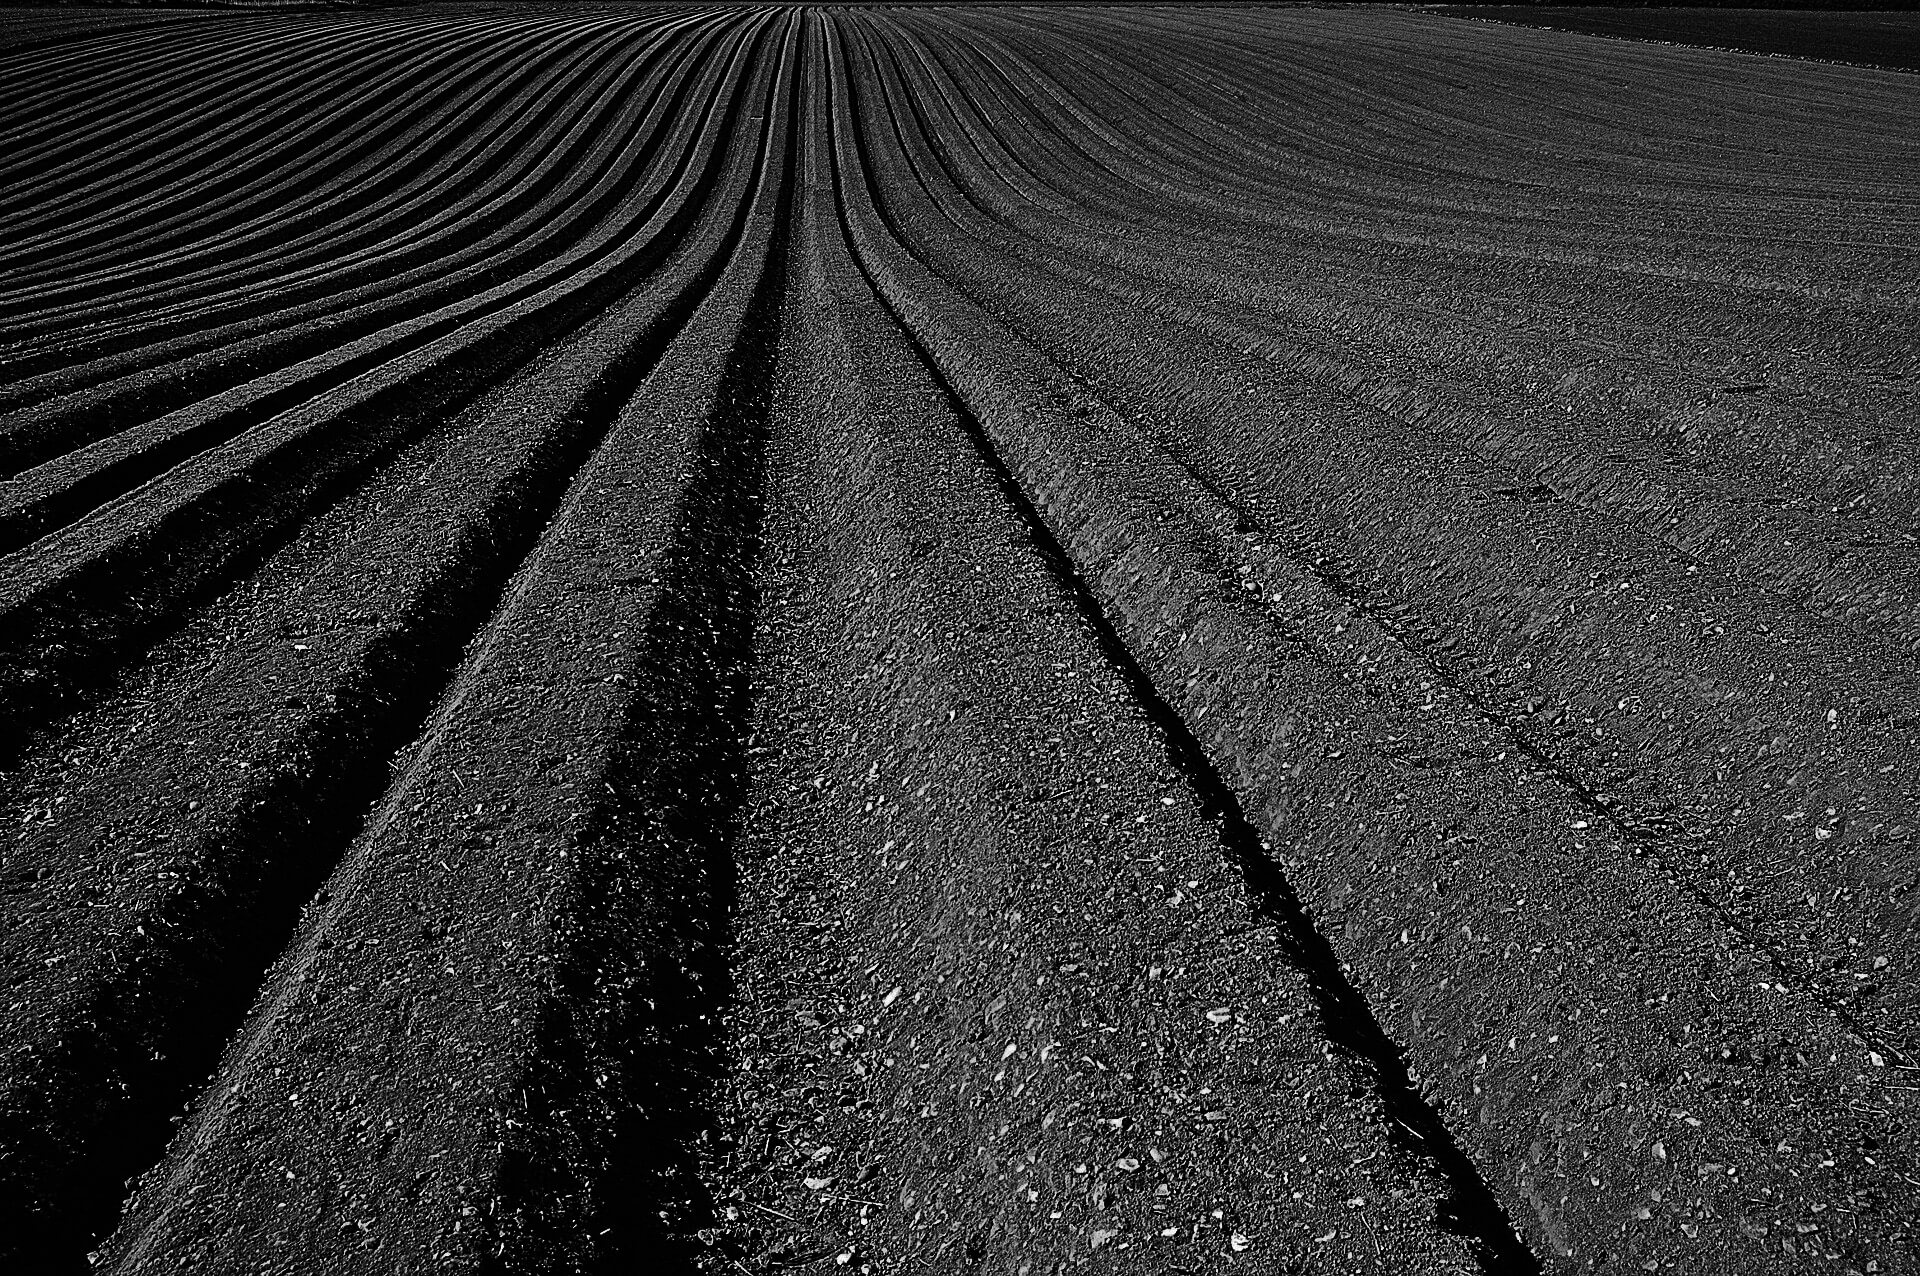 A photo of tilled rows.